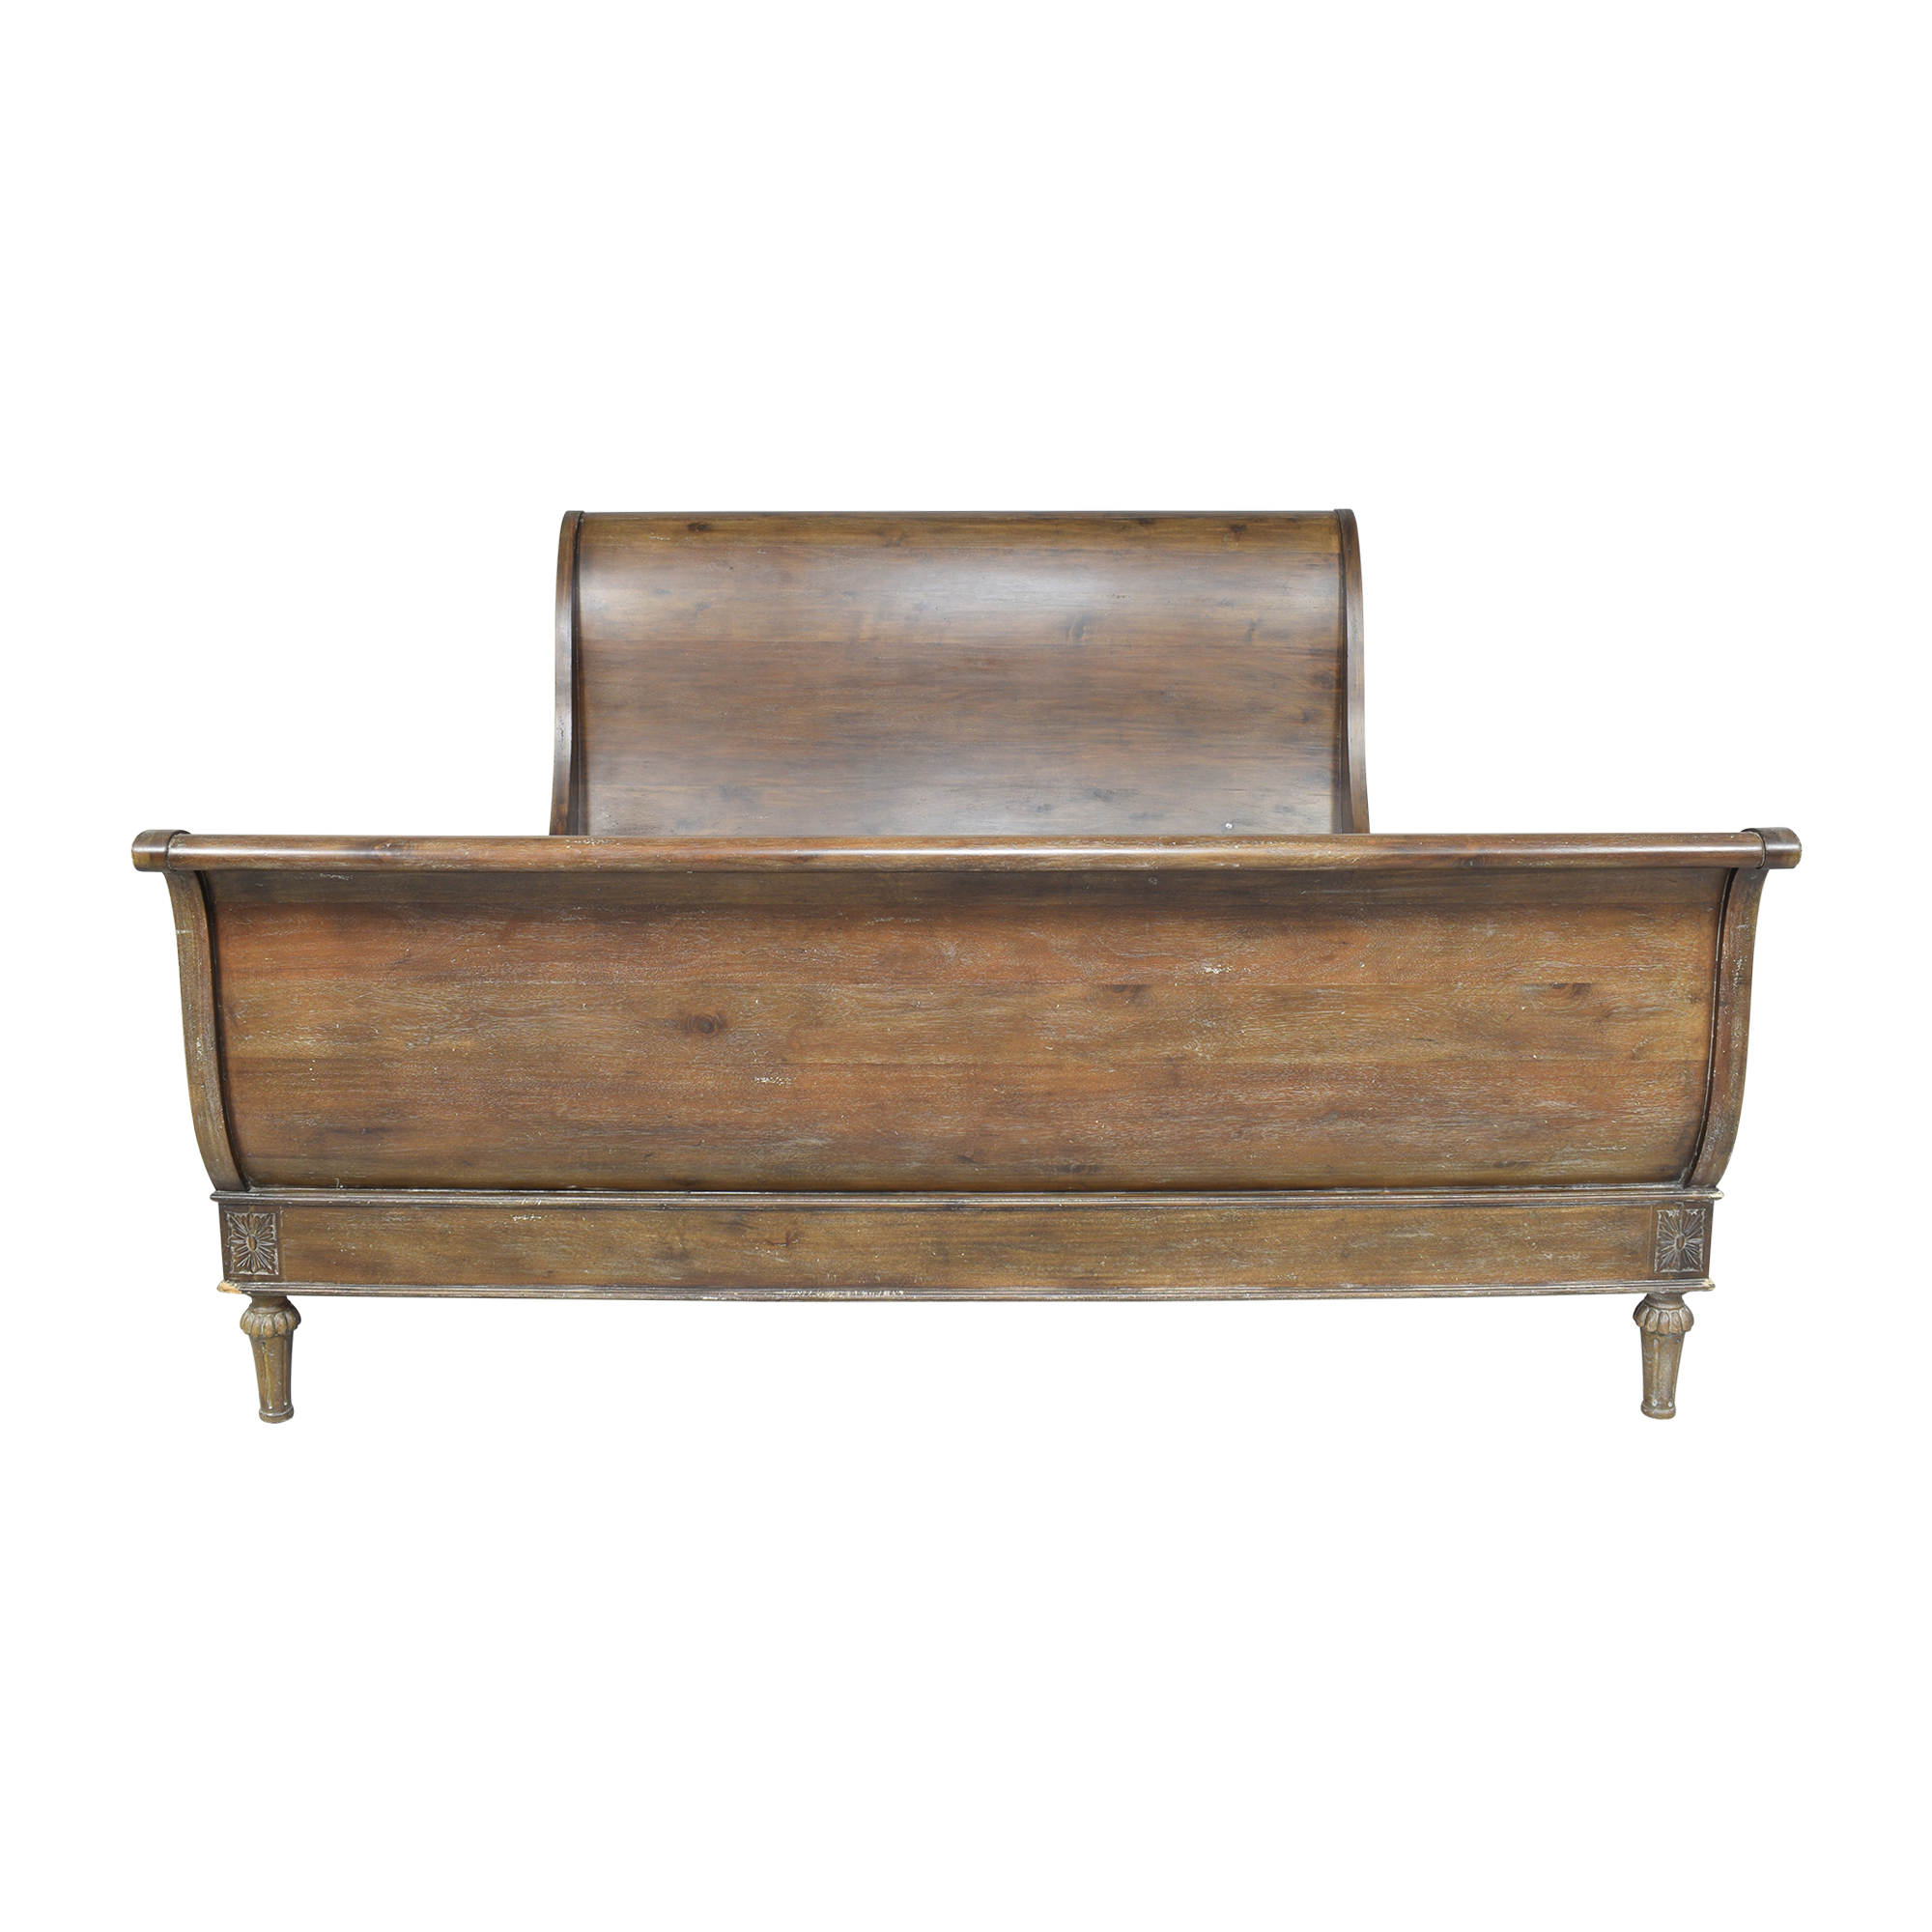 buy Restoration Hardware Empire Rosette King Sleigh Bed with Footboard Restoration Hardware Bed Frames